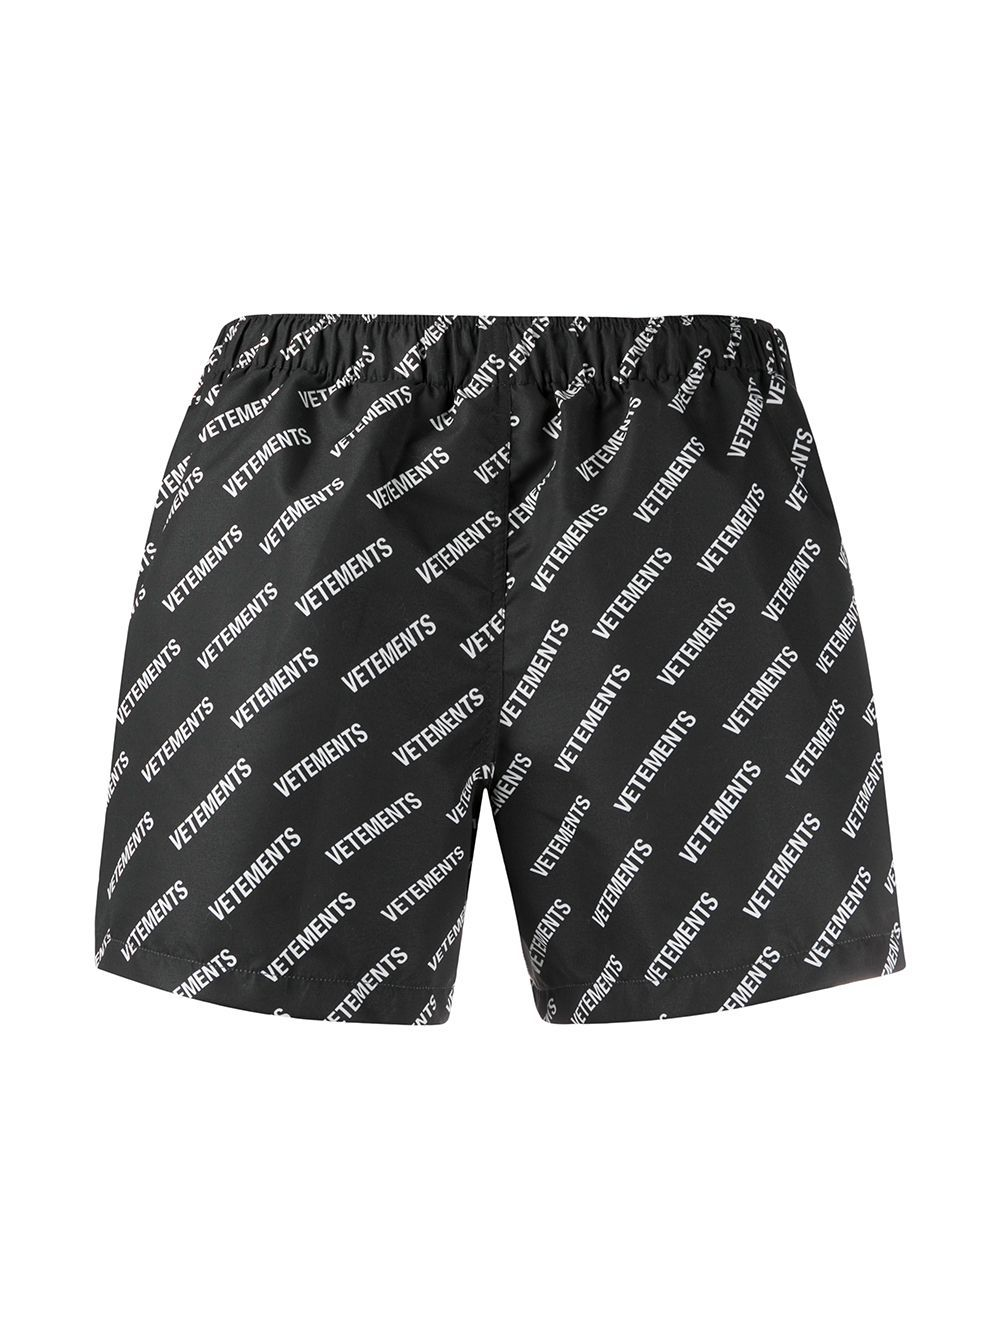 VETEMENTS logo swim shorts black - Maison De Fashion